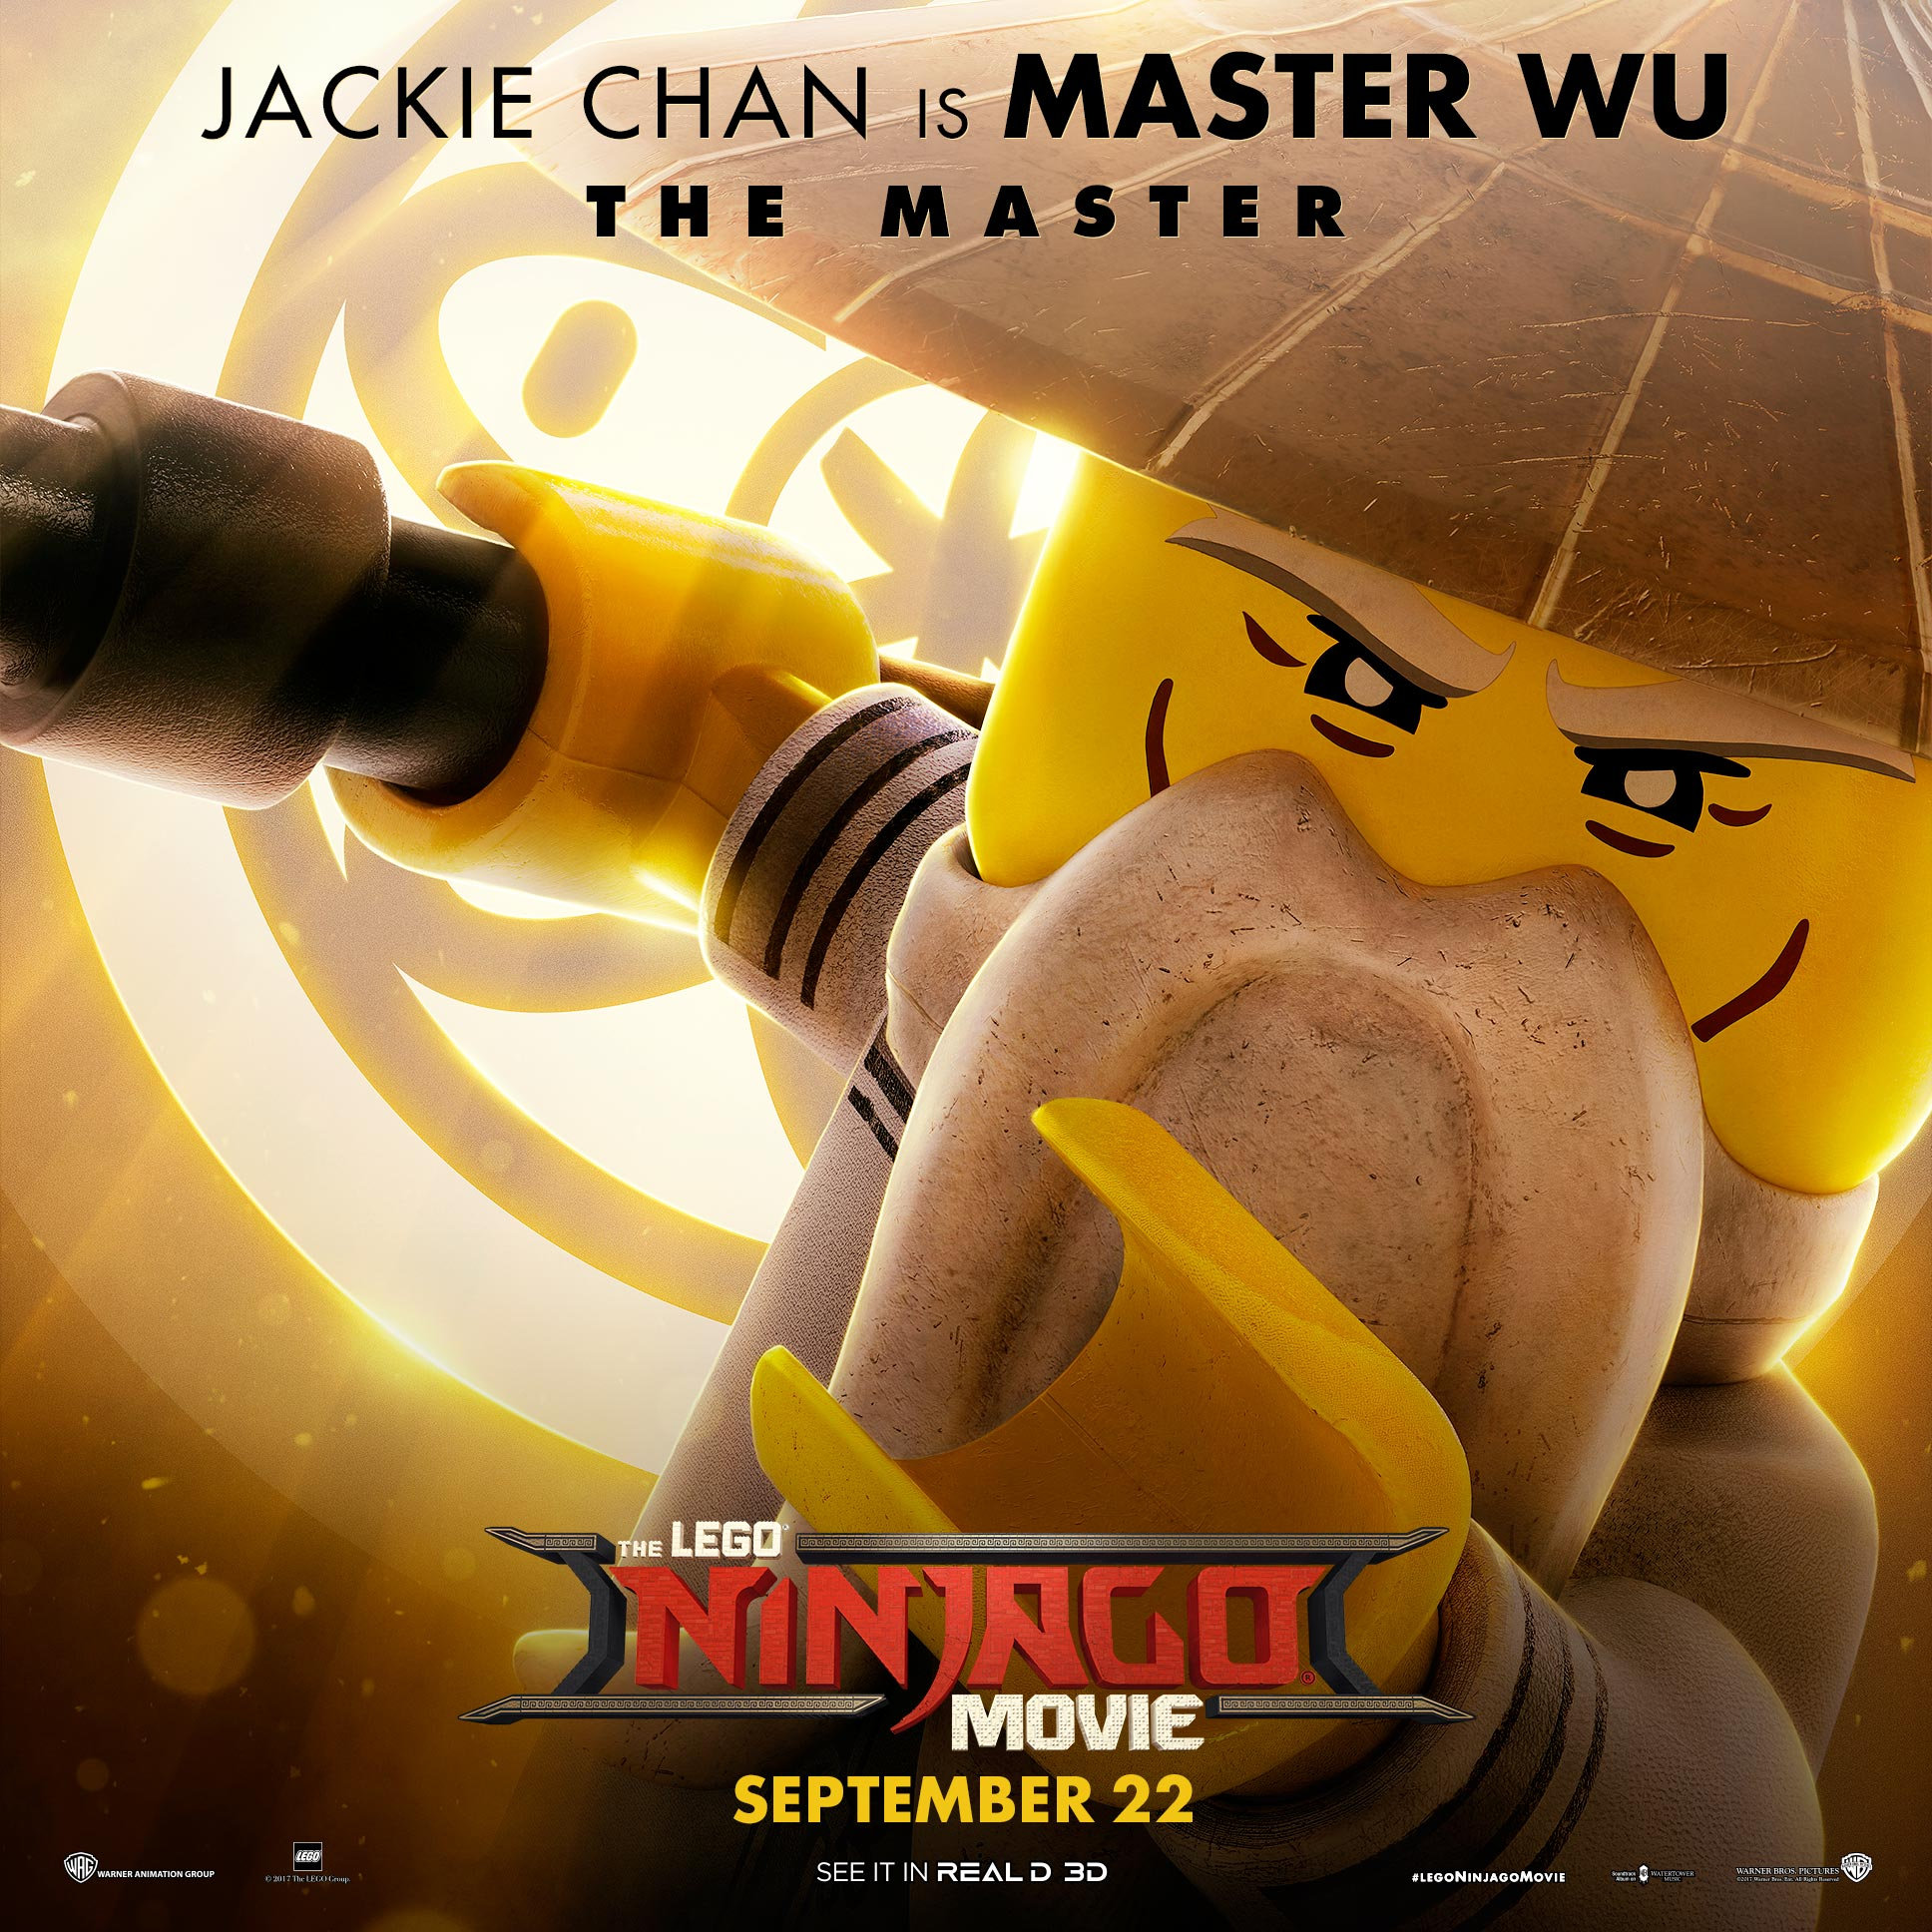 lego, ninjago, movie jackie chan, película